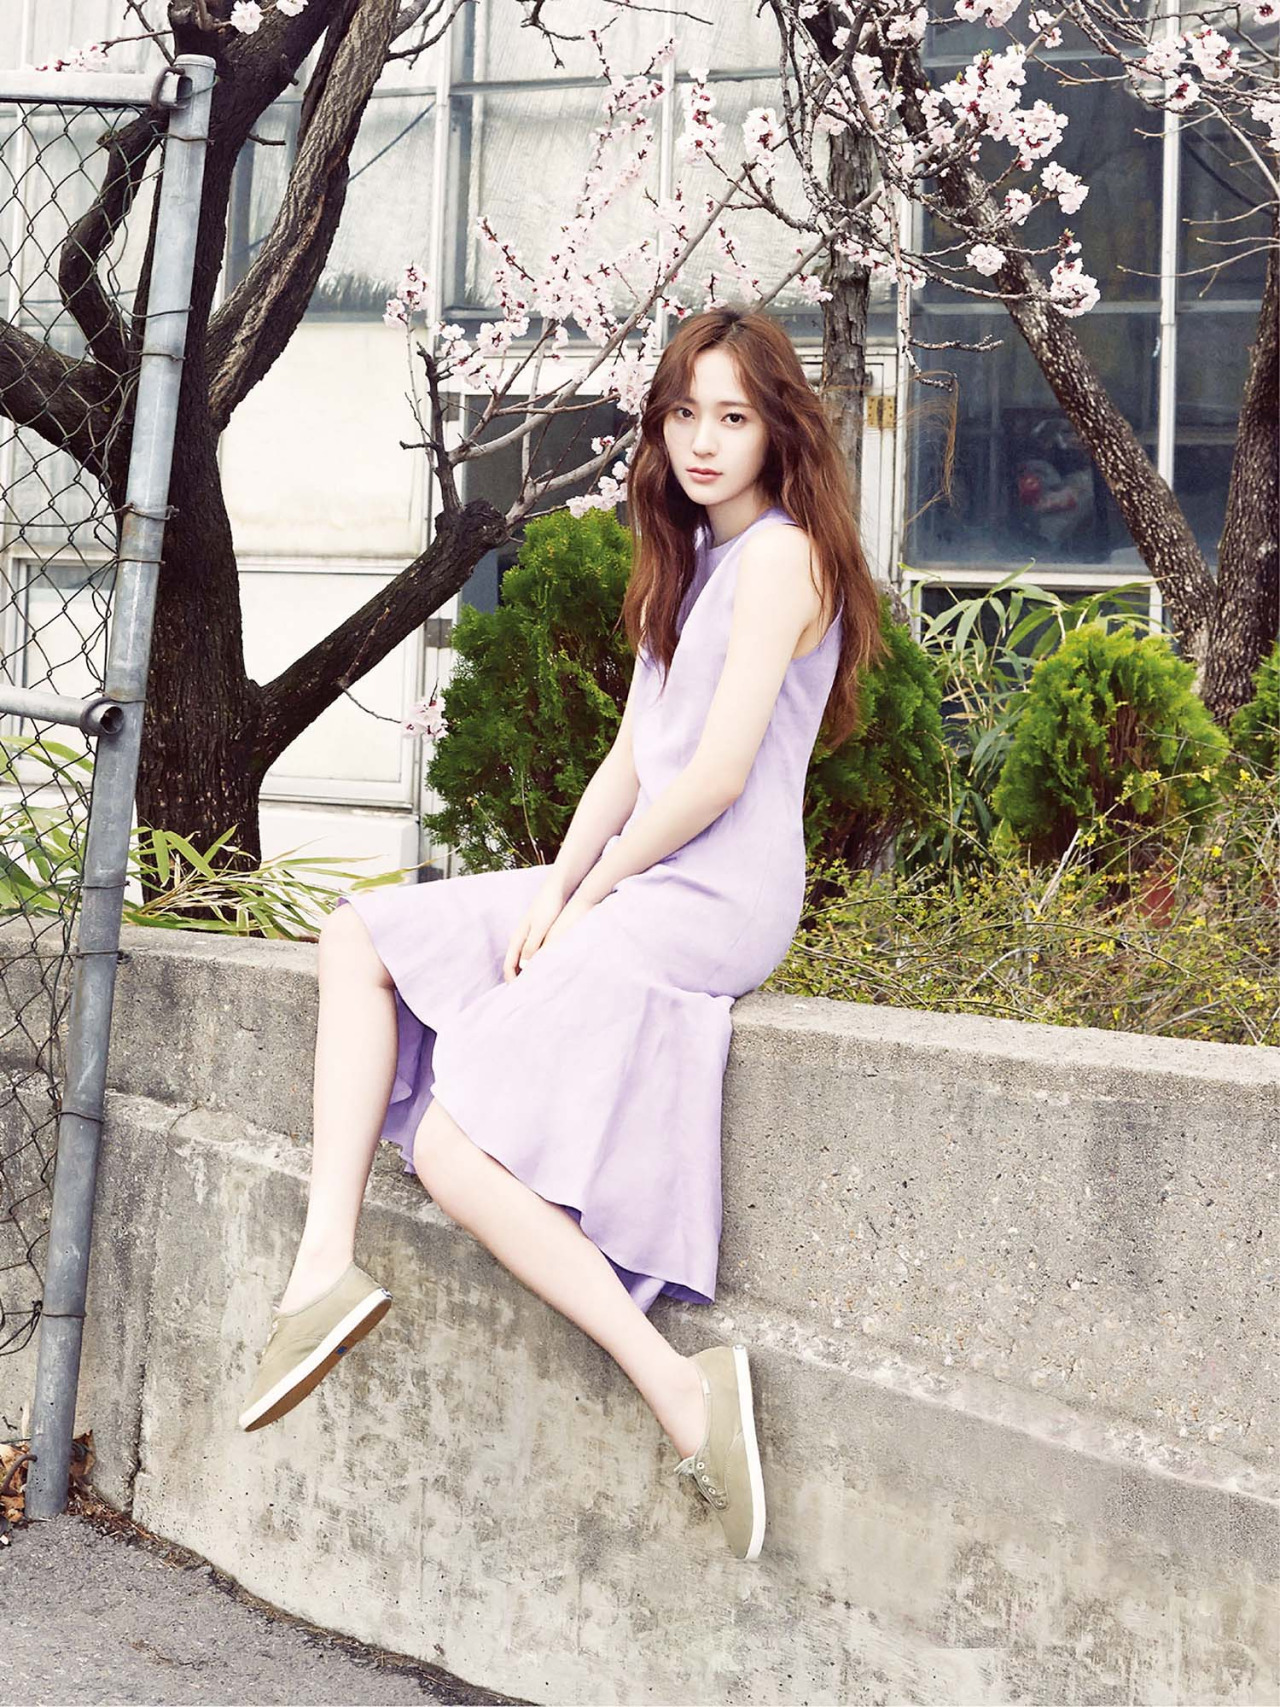 F-x-Krystal-%E2%80%93-Vogue-Girl-Magazine-May-Issue-%E2%80%98-wallpaper-wp3005471